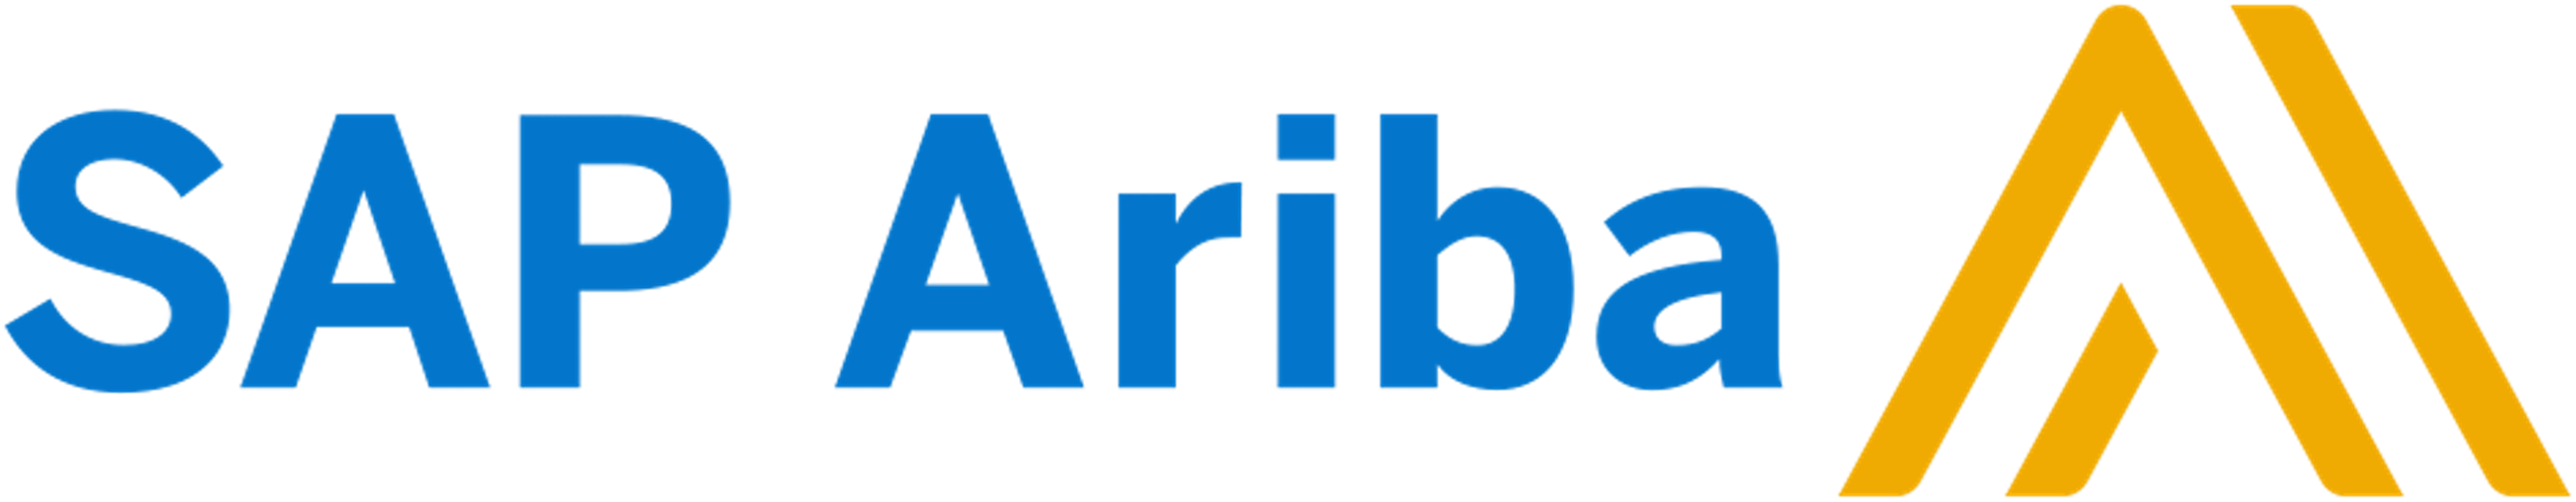 sap ariba reviews